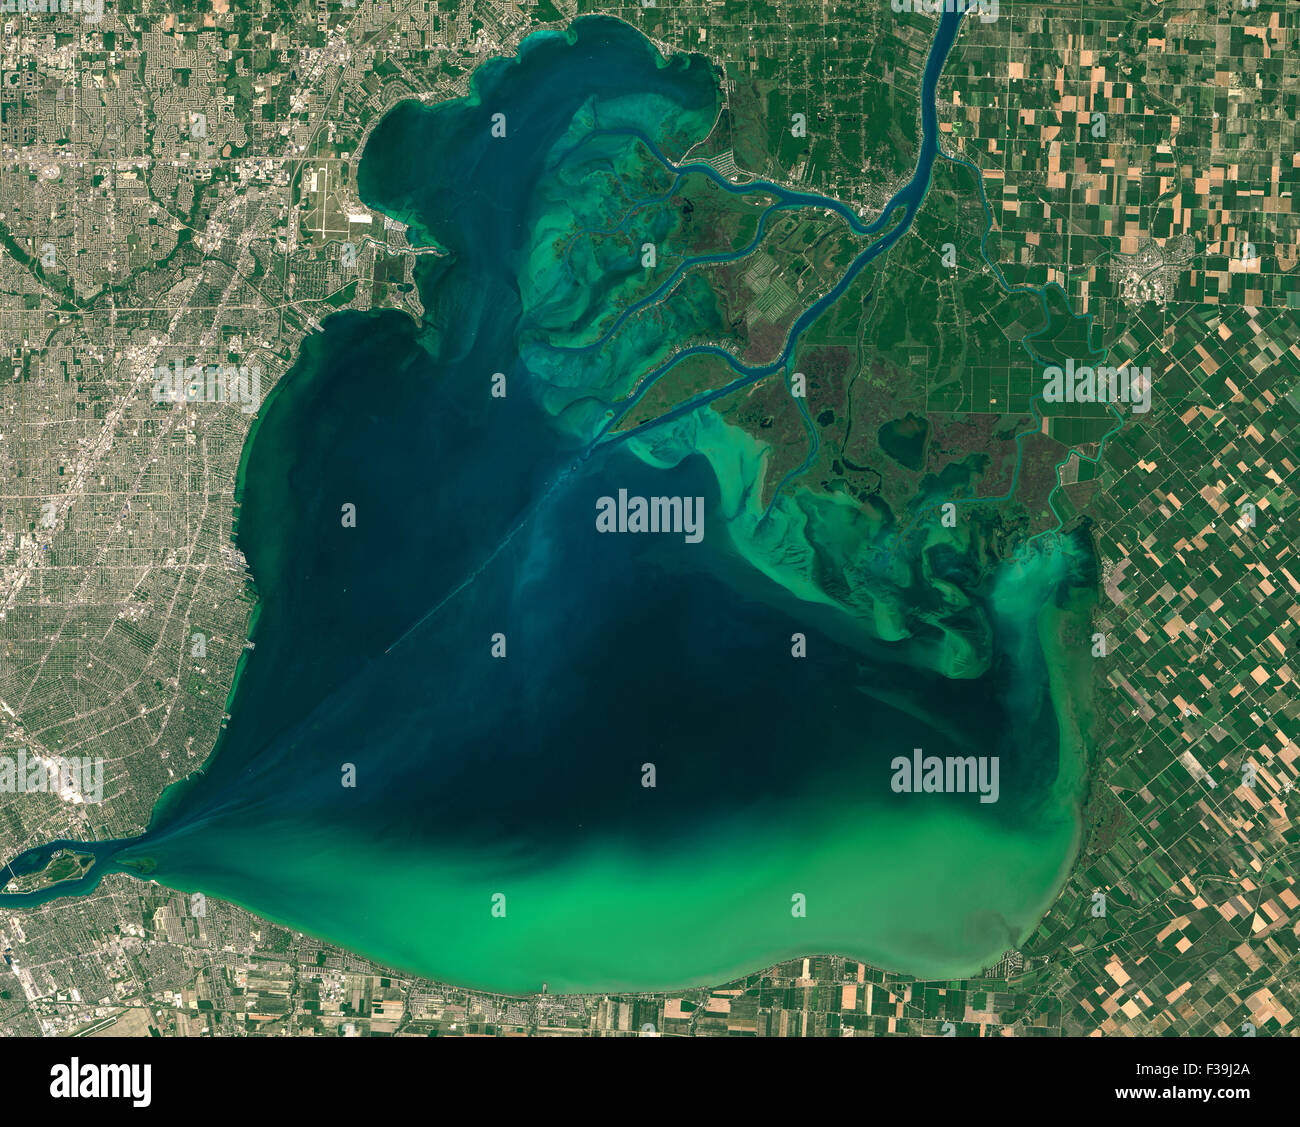 Algal blooms around the Great Lakes, visible as swirls of green in this image of Lake St. Clair and in western Lake - Stock Image